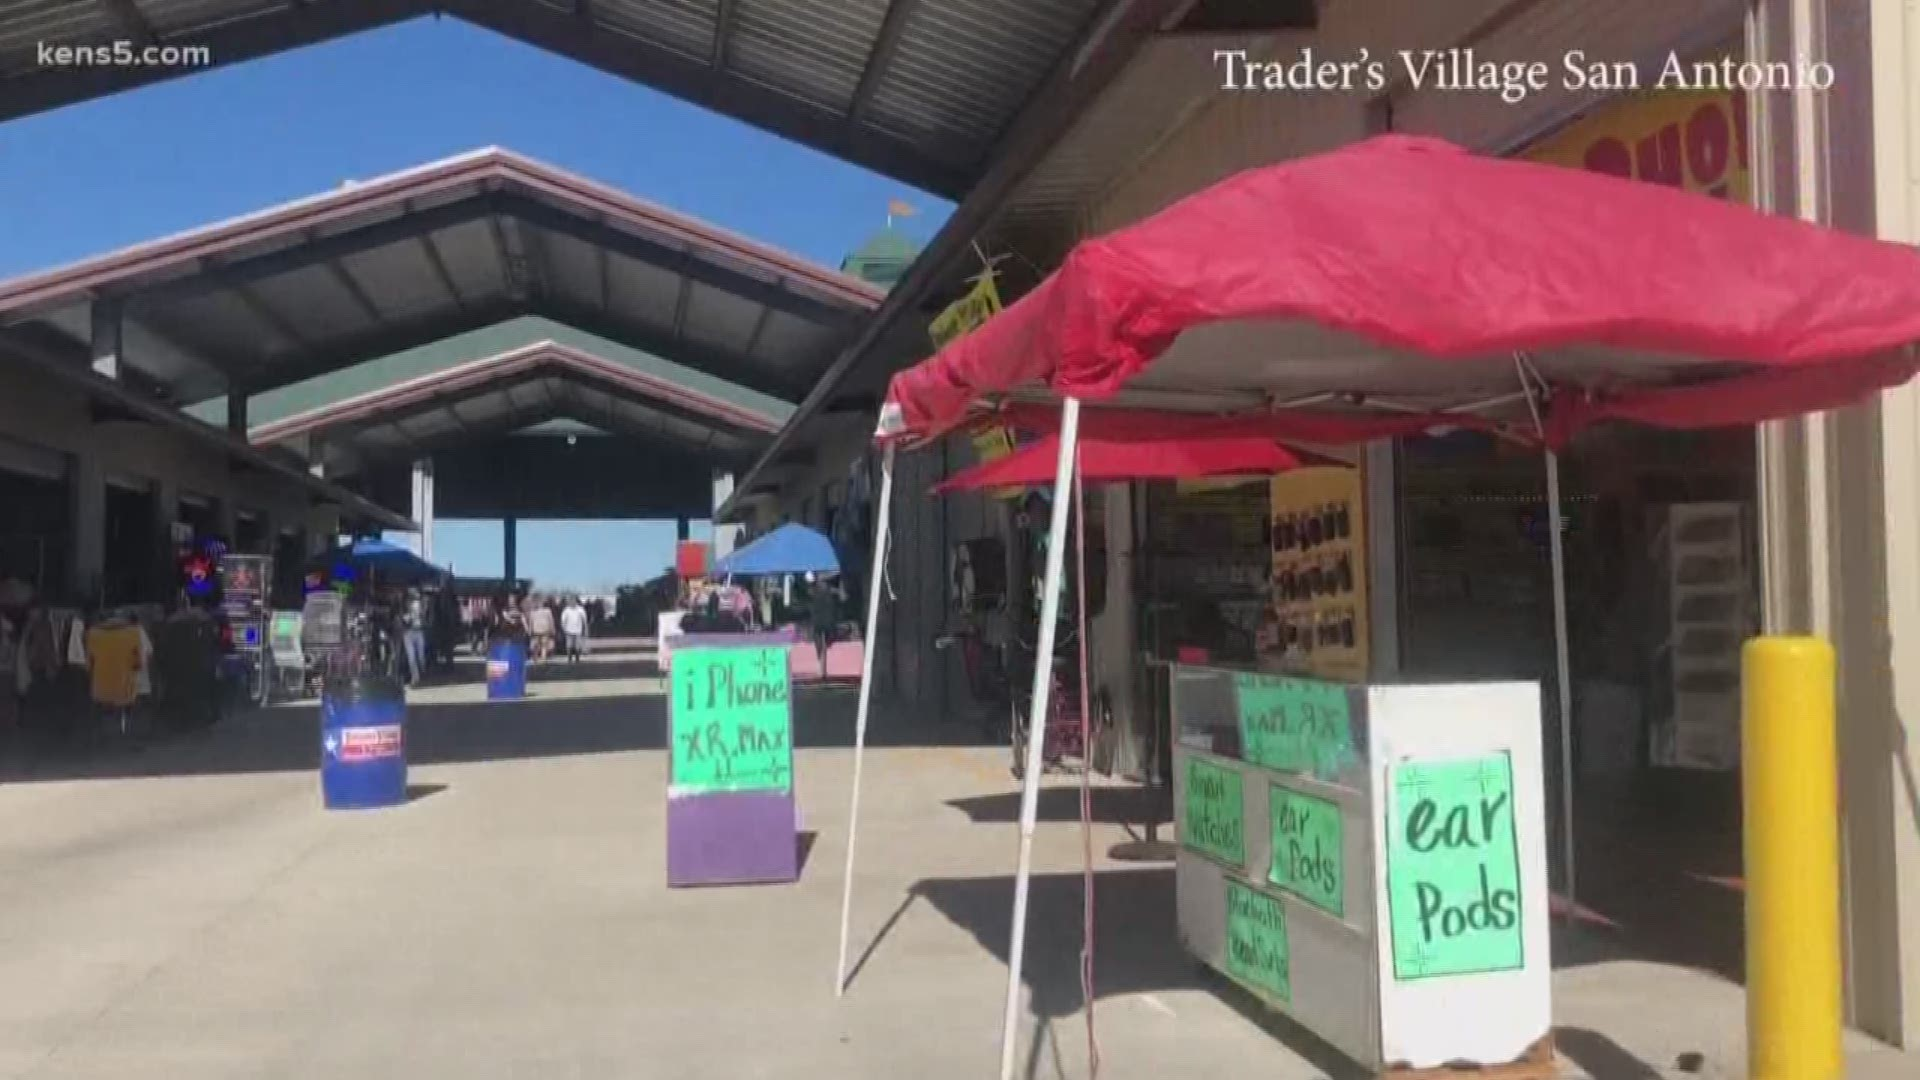 This is their livelihood' | Traders Village forced to stay closed after  city cites governor's order | localmemphis.com